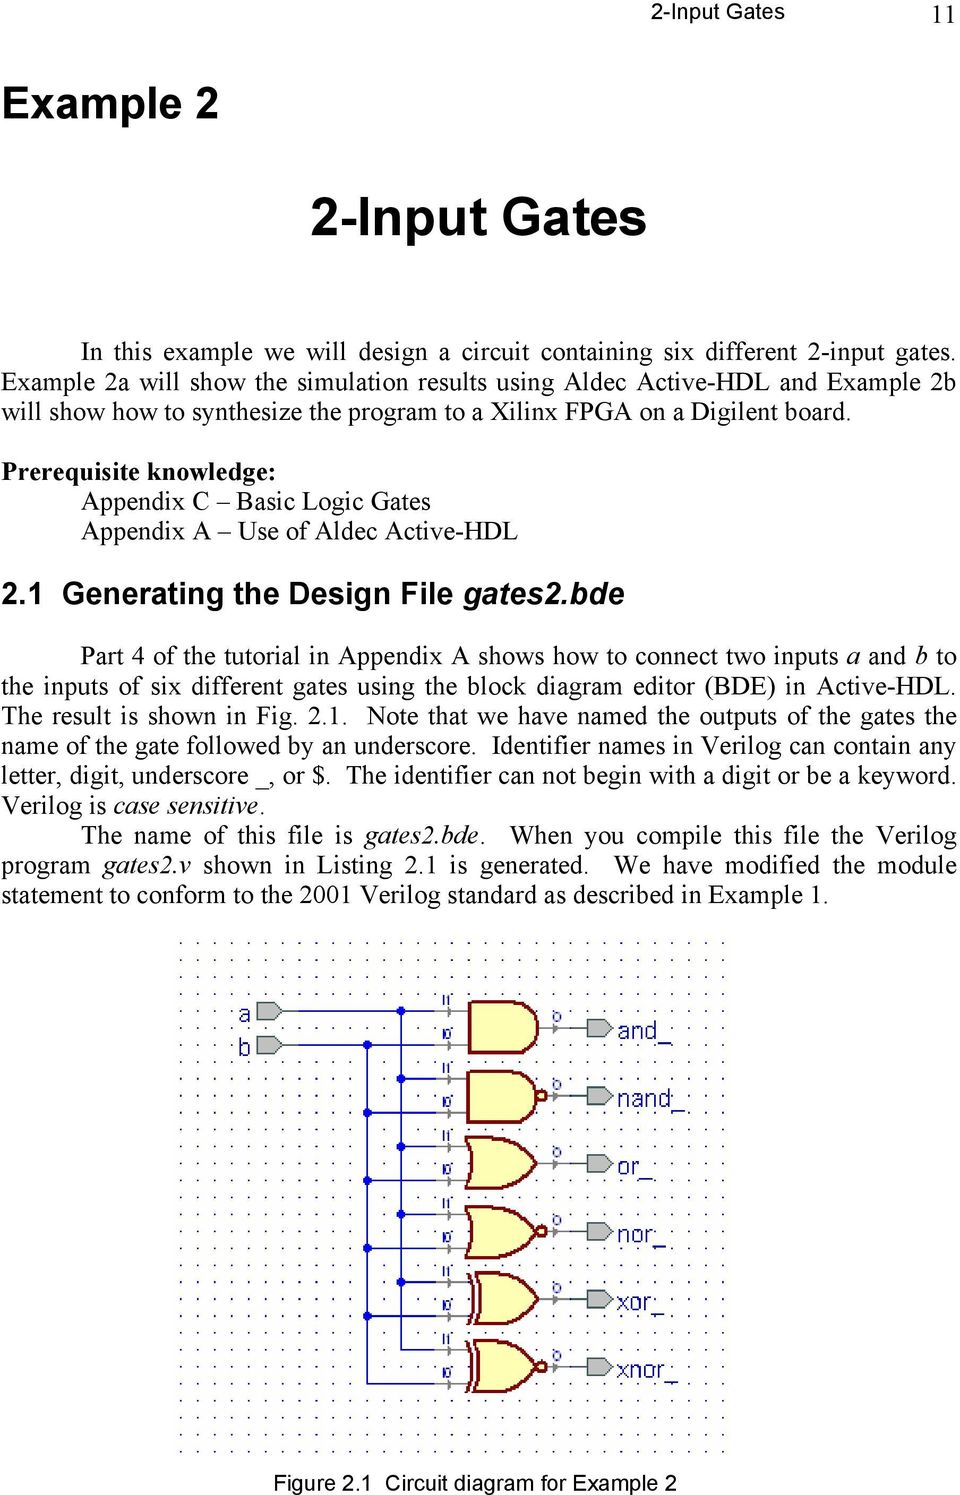 Introduction To Digital Design Using Digilent Fpga Boards Block Logic Diagram Prerequisite Knowledge Appendix C Basic Gates A Use Of Aldec Active Hdl